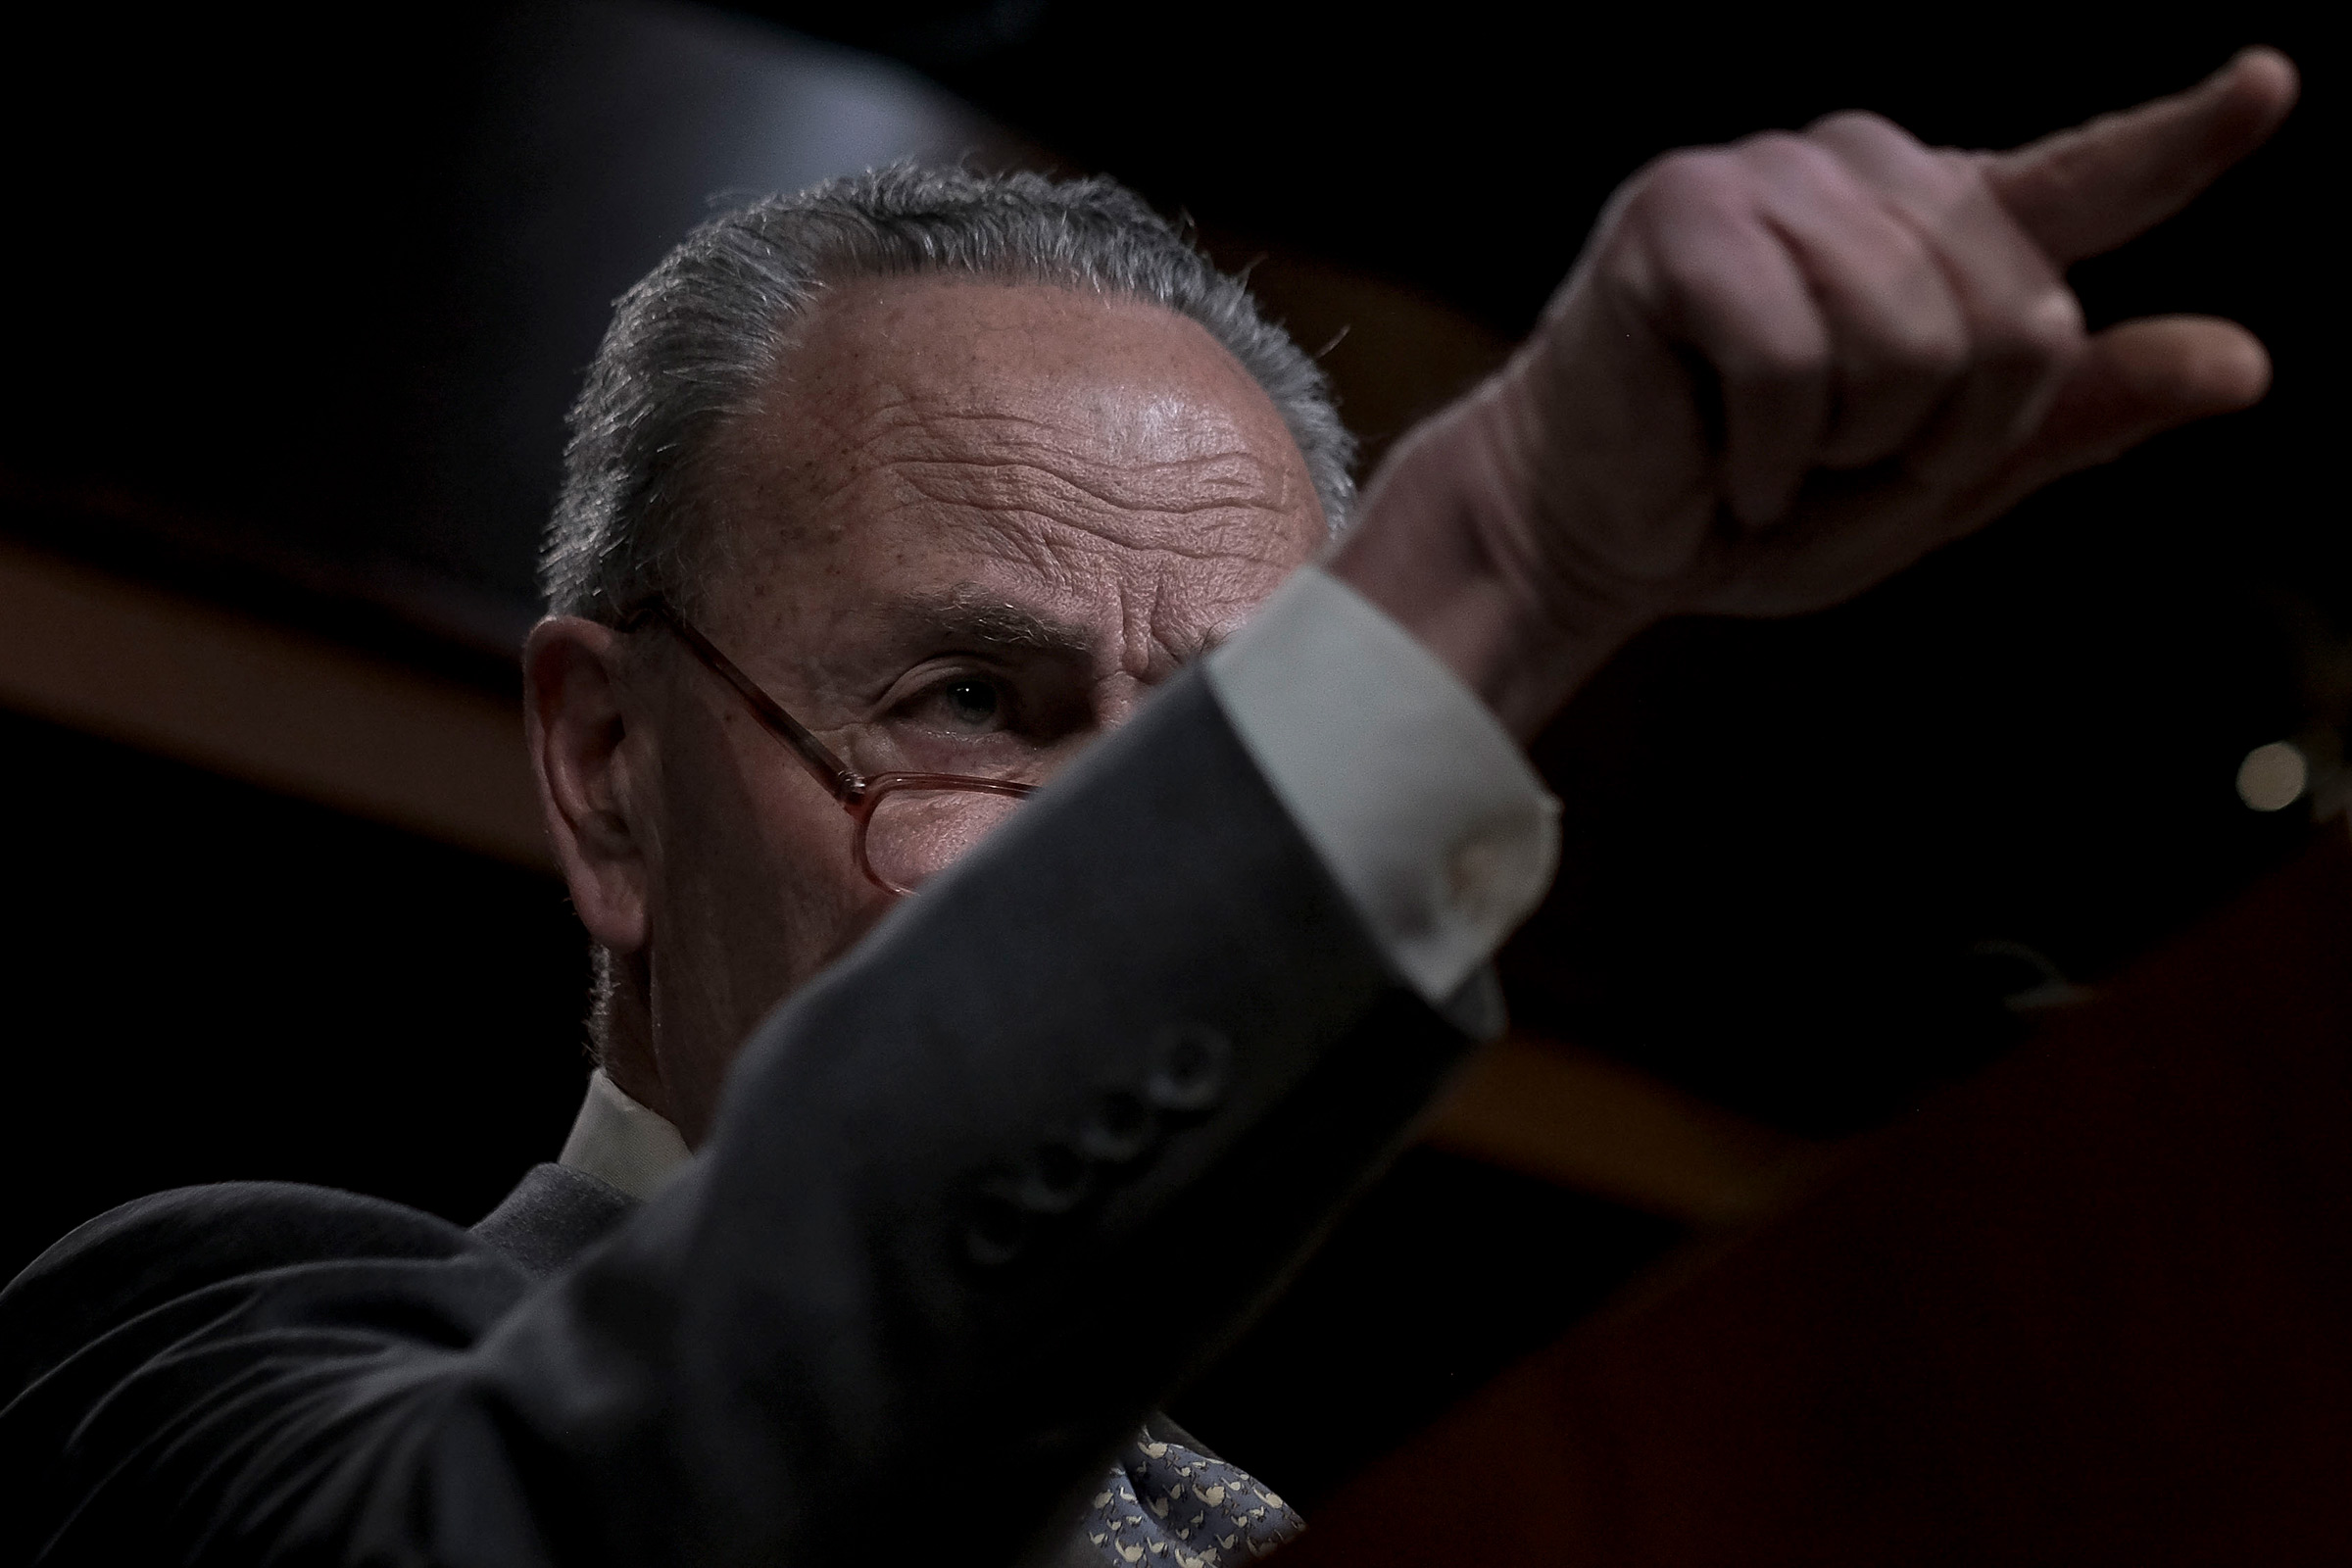 Senate Minority Leader Chuck Schumer (D-N.Y.) speaks to reporters at a press conference at the Capitol in Washington, D.C. on Jan. 27, 2020. Gabriella Demczuk / TIME